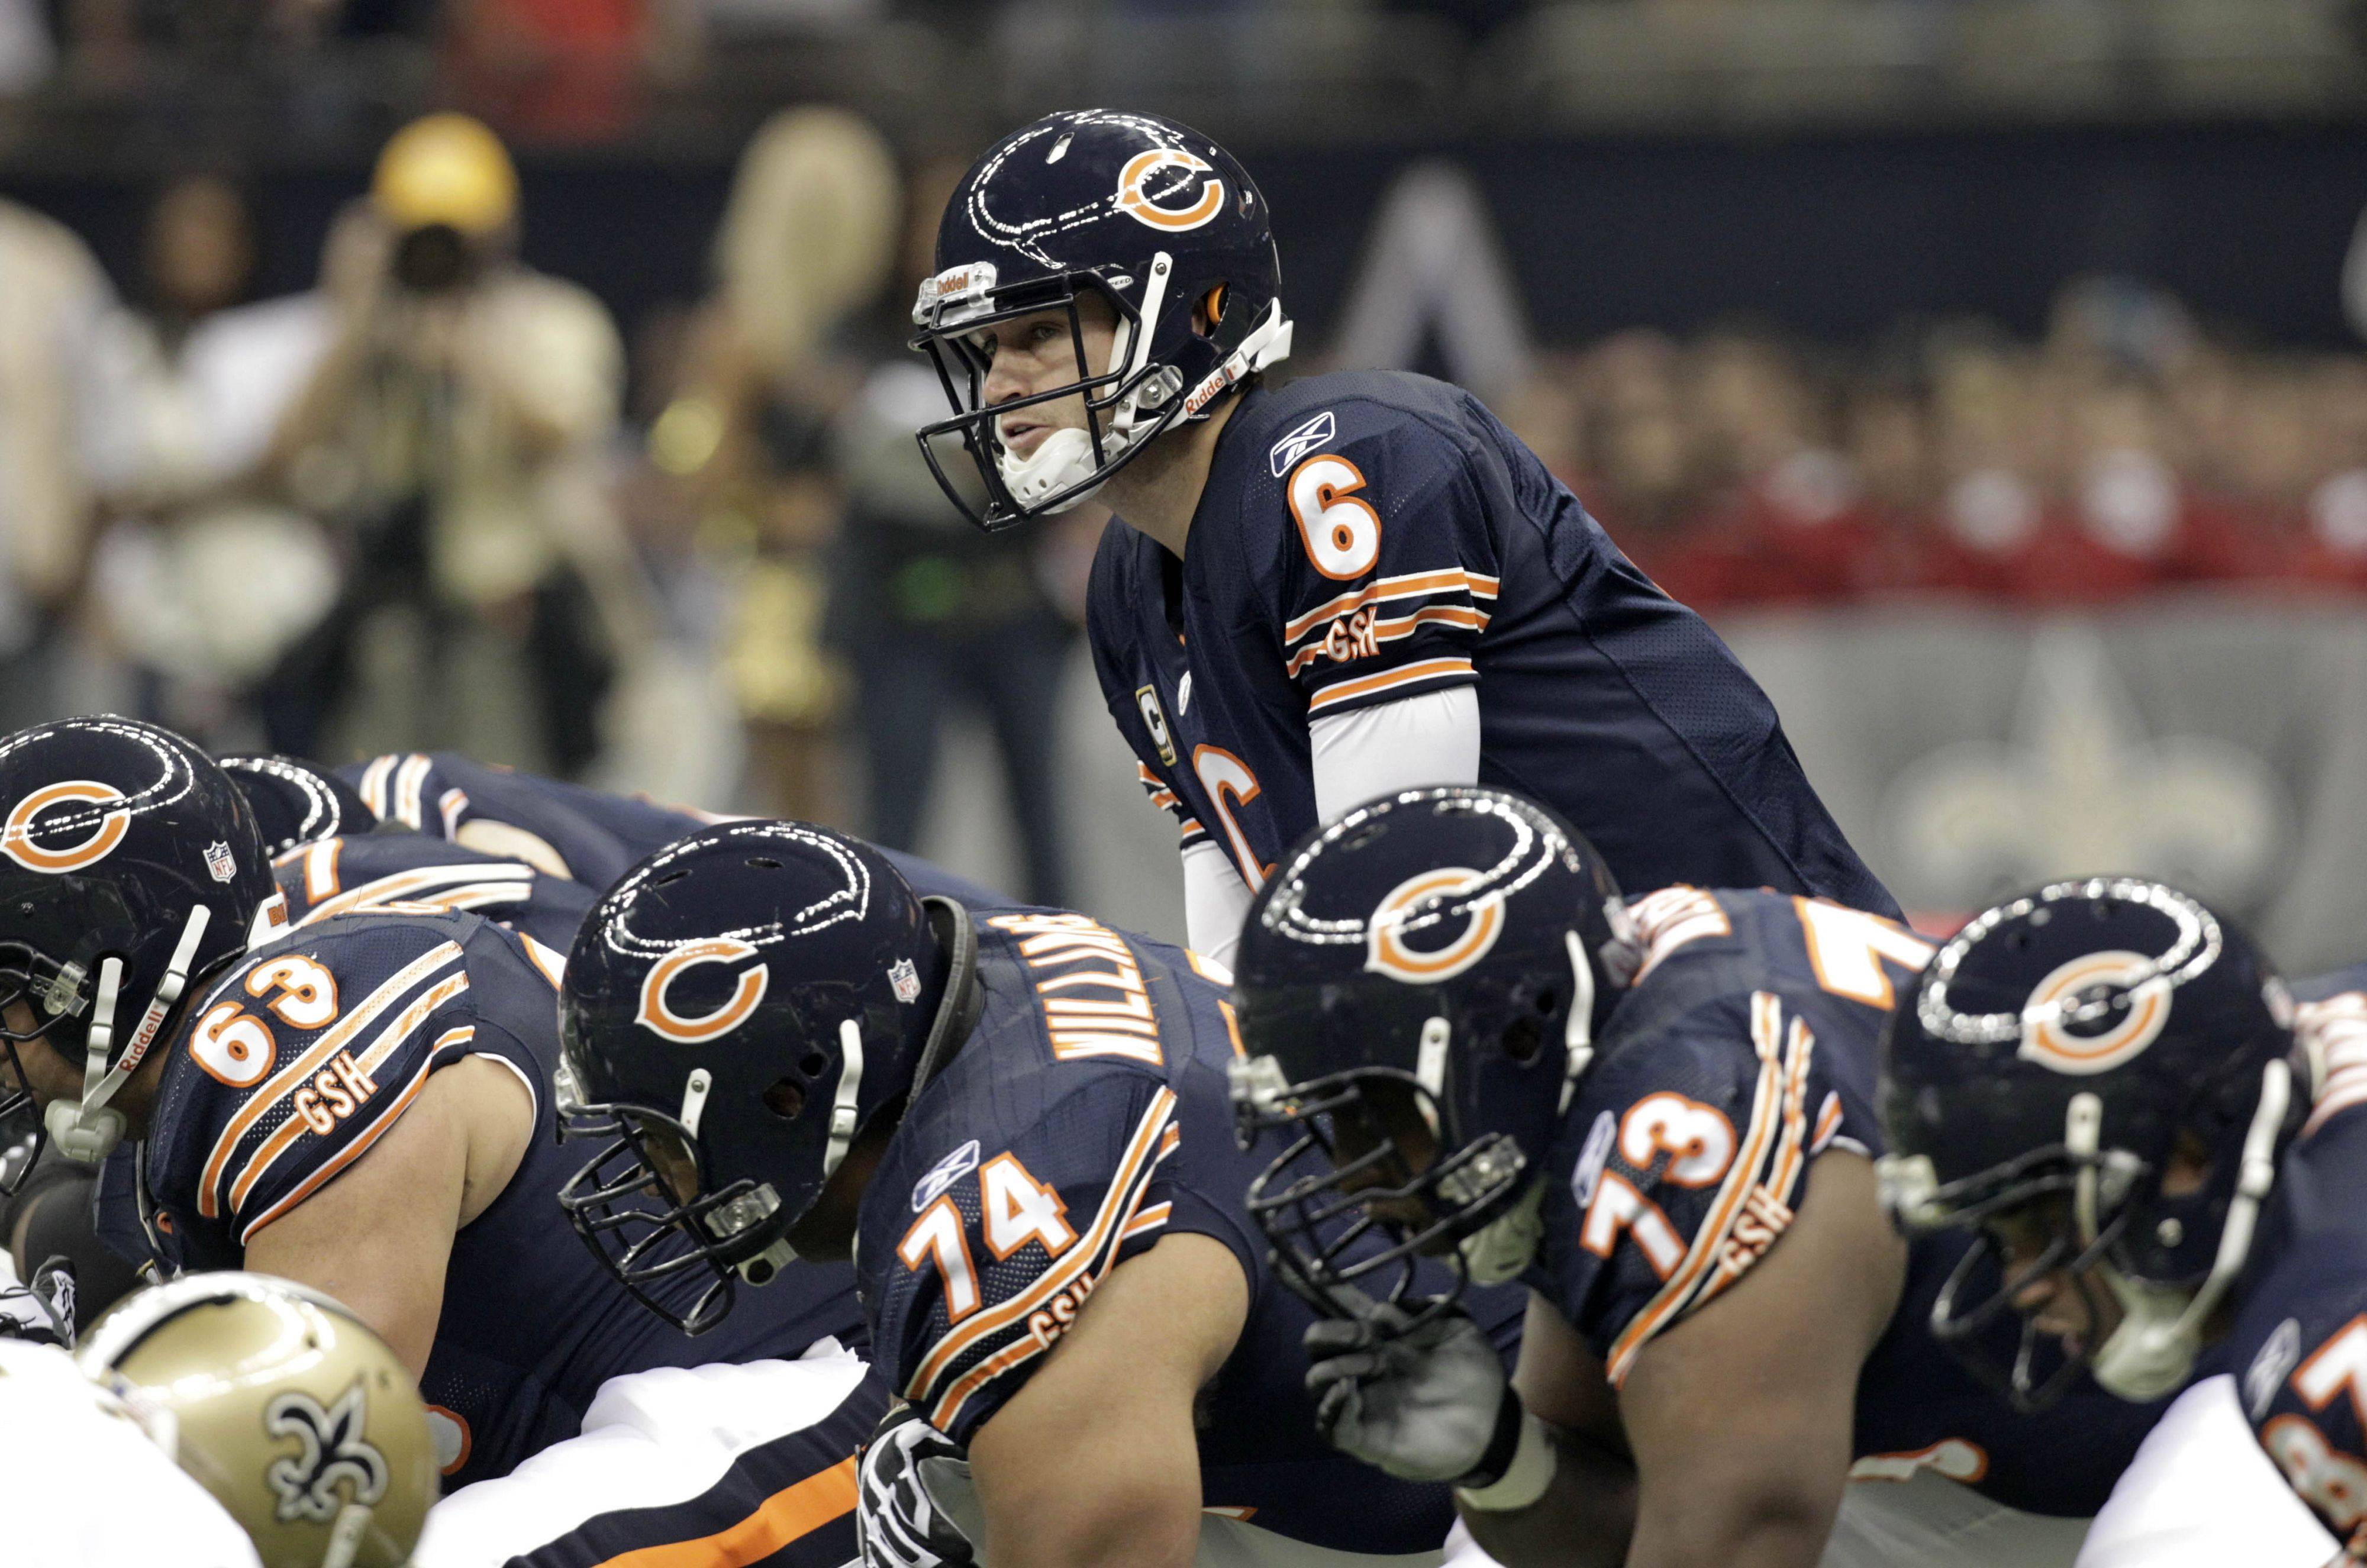 "Bears quarterback Jay Cutler and his wide receivers need to do a better job of executing ""hot"" reads when the defense blitzes. Poor pass protection wasn't the only problem Sunday against New Orleans as Bears wide receivers failed to break free from single-coverage matchups and Cutler failed to get them the ball."